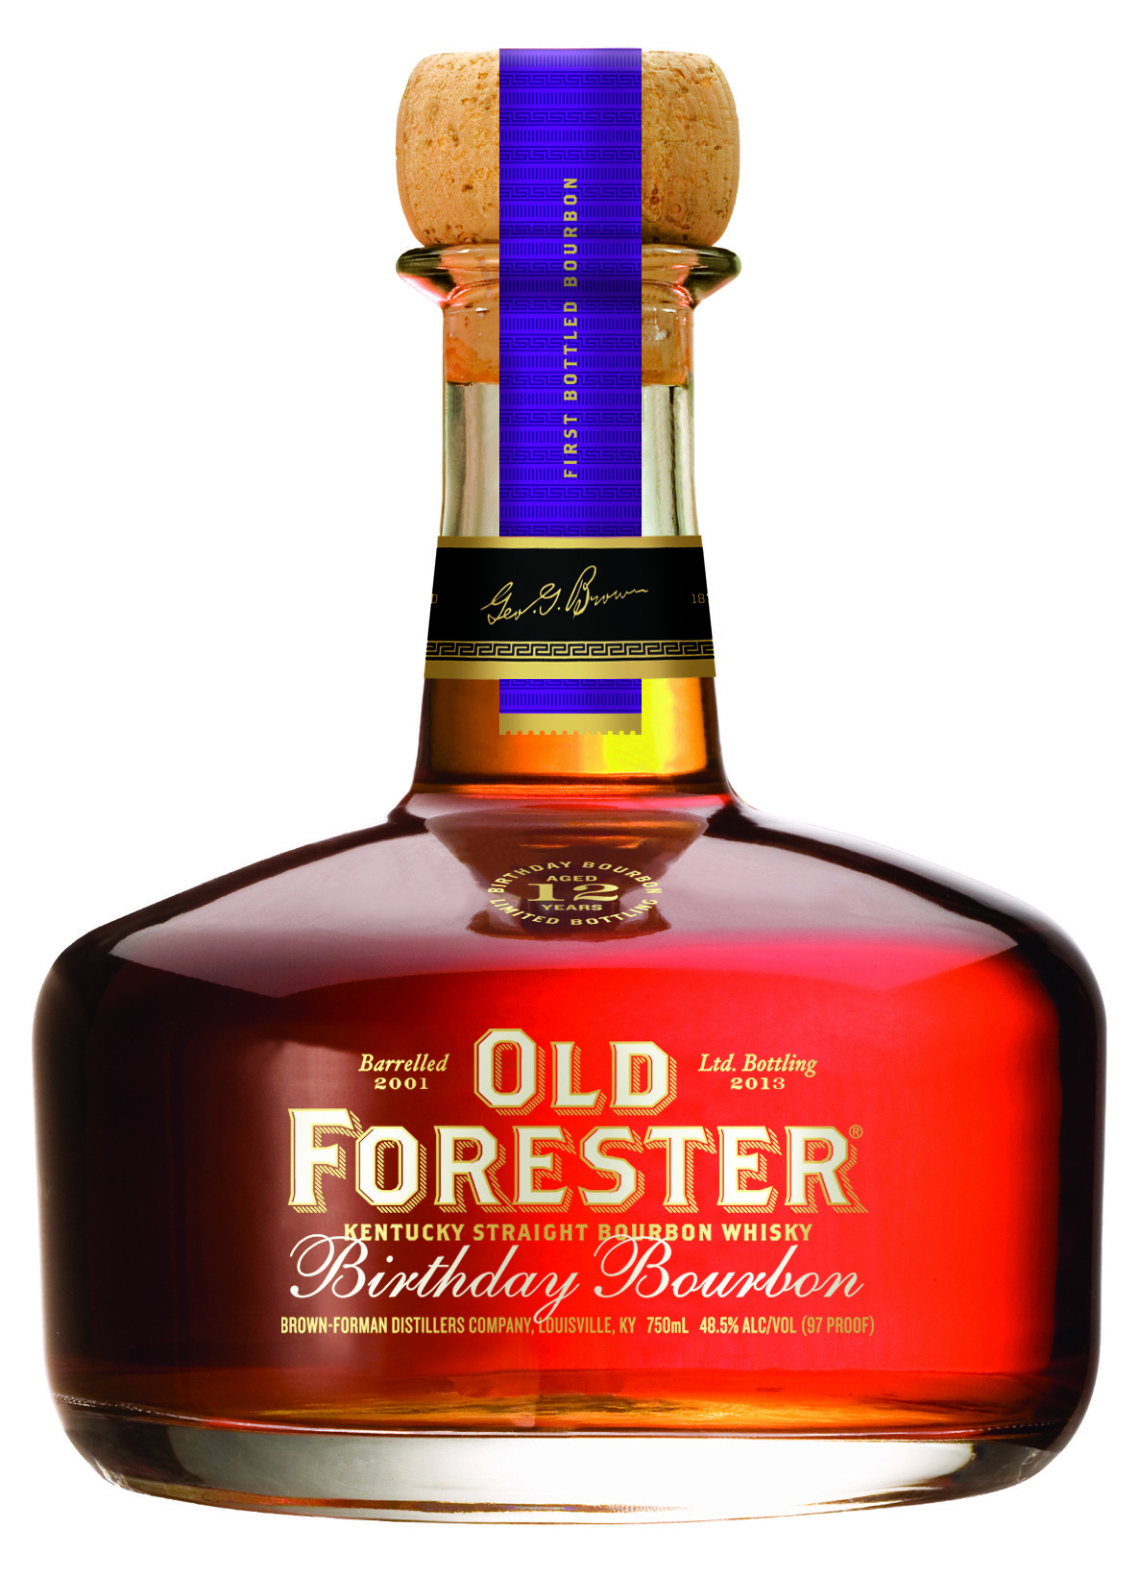 Old Forester Birthday 12 years aged 2013 bottling